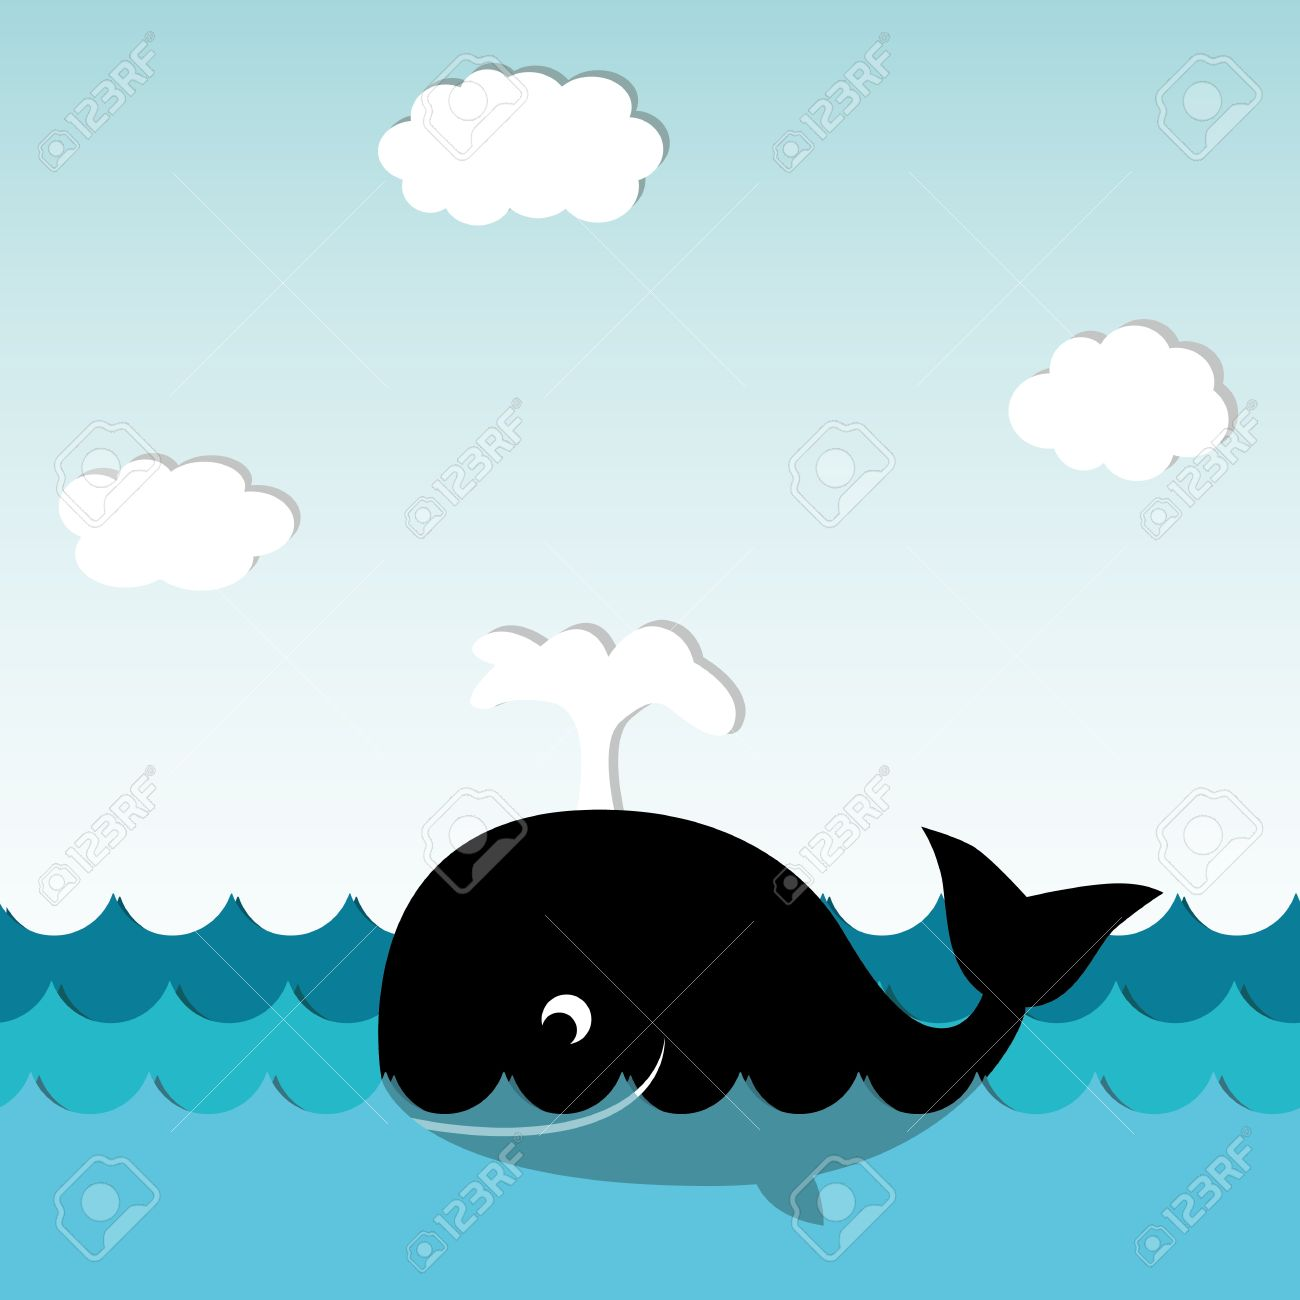 Cute whale in water cartoon isolated illustration stock photography - Whale Cartoon Cute Smiling Whale Illustration